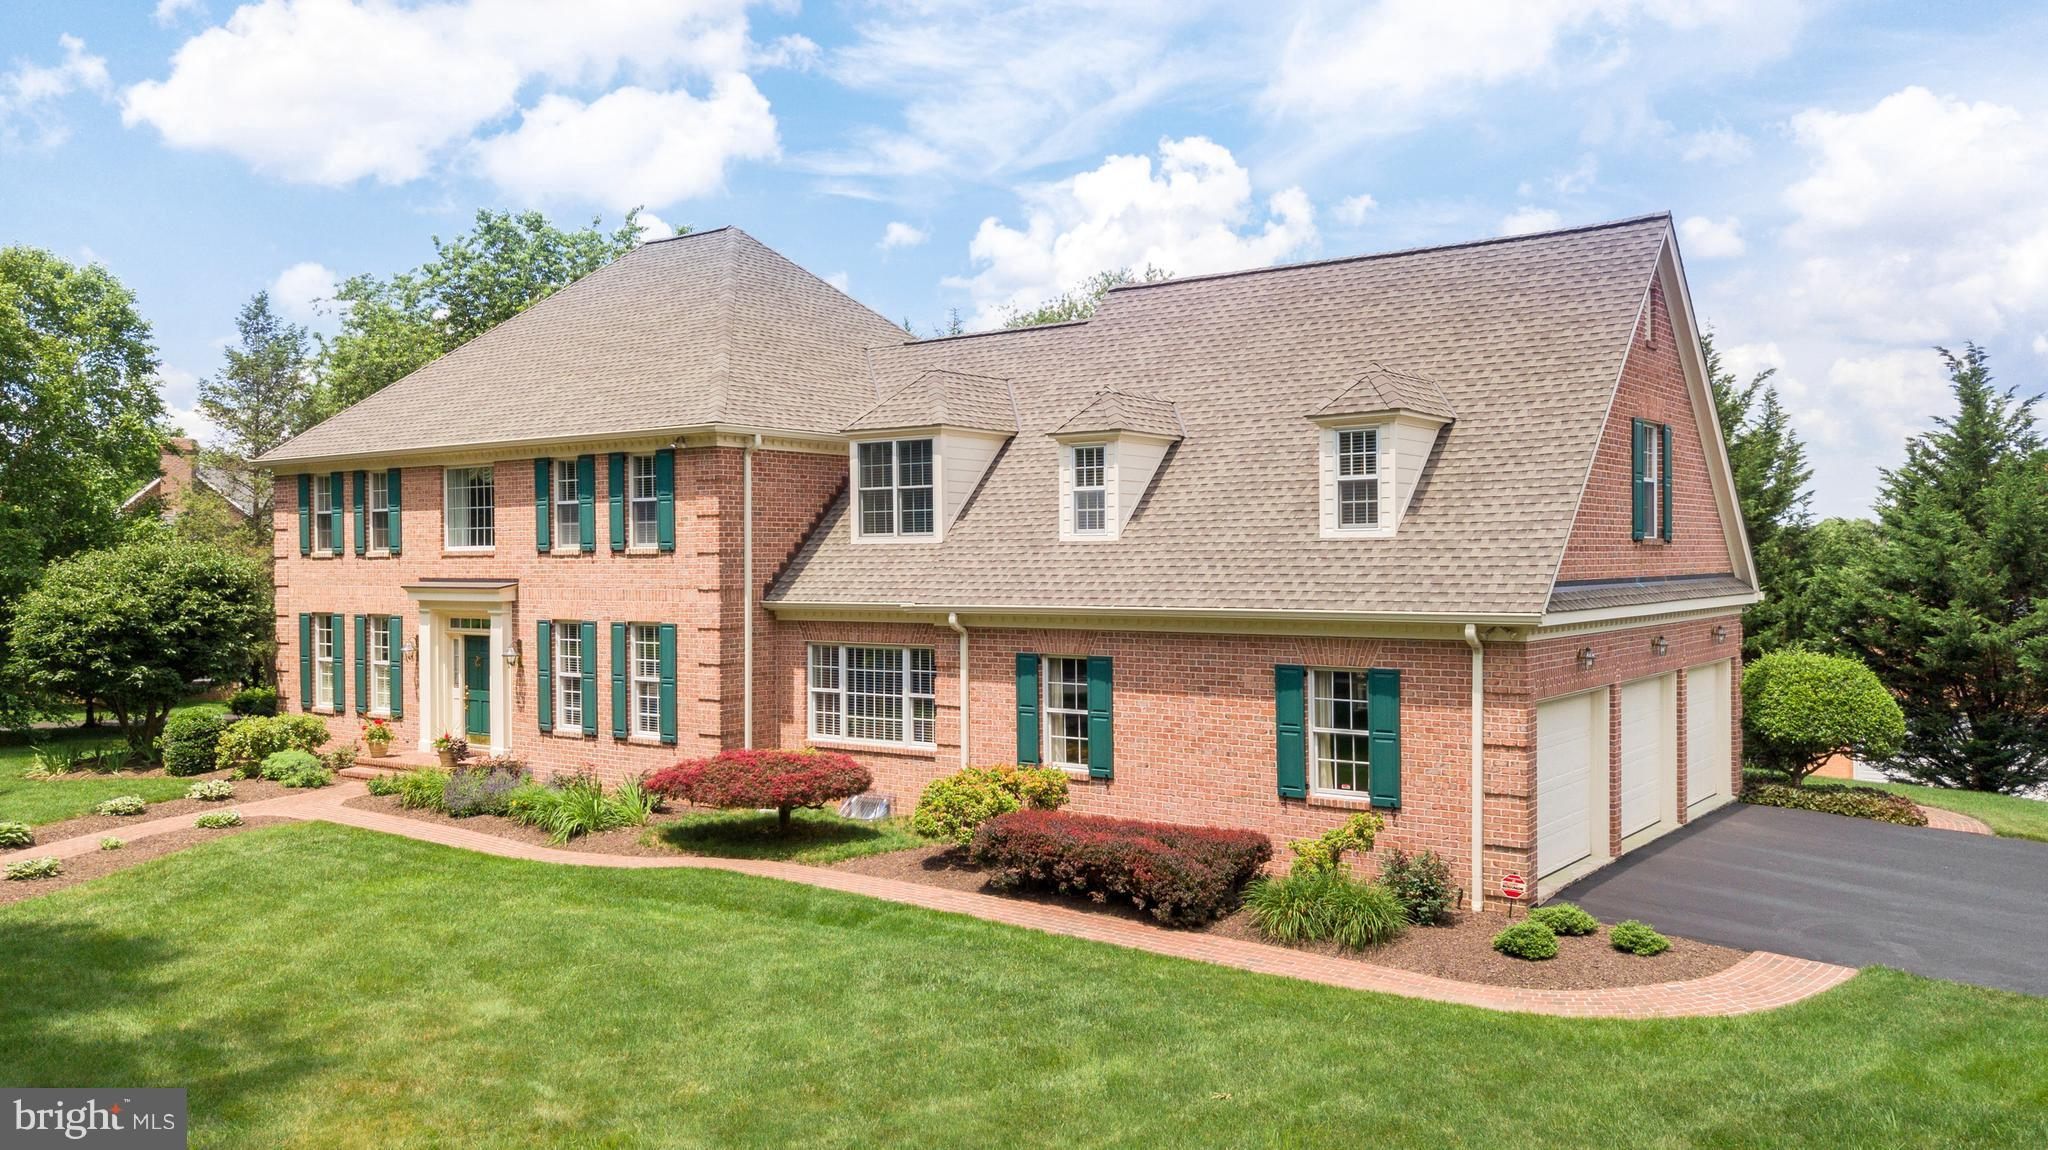 1413 TURNBERRY WAY, BEL AIR, MD 21015